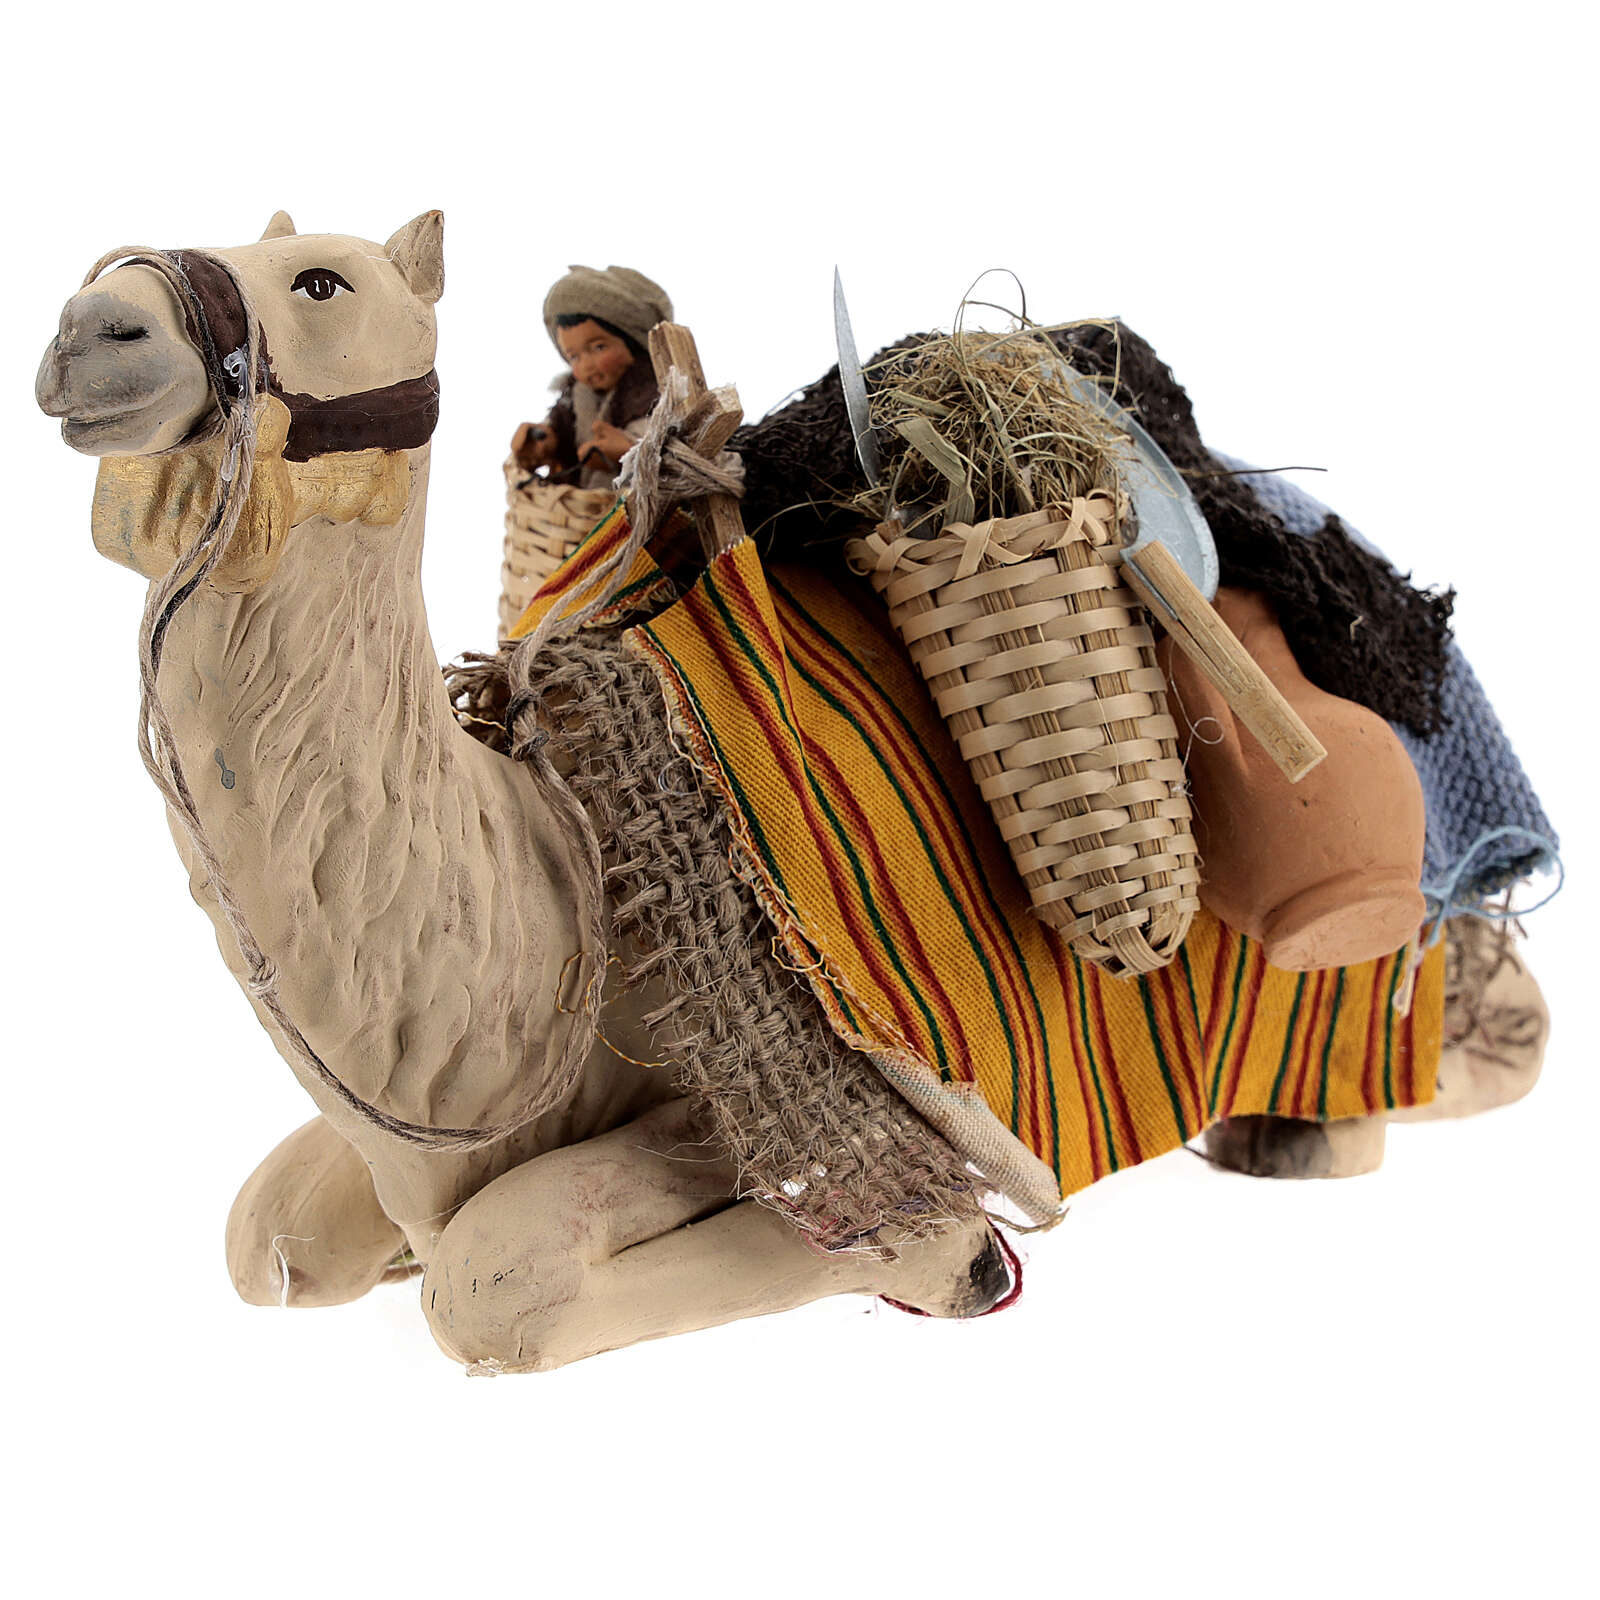 Camel with child in basket 15 cm figurine Neapolitan Nativity Scene 4